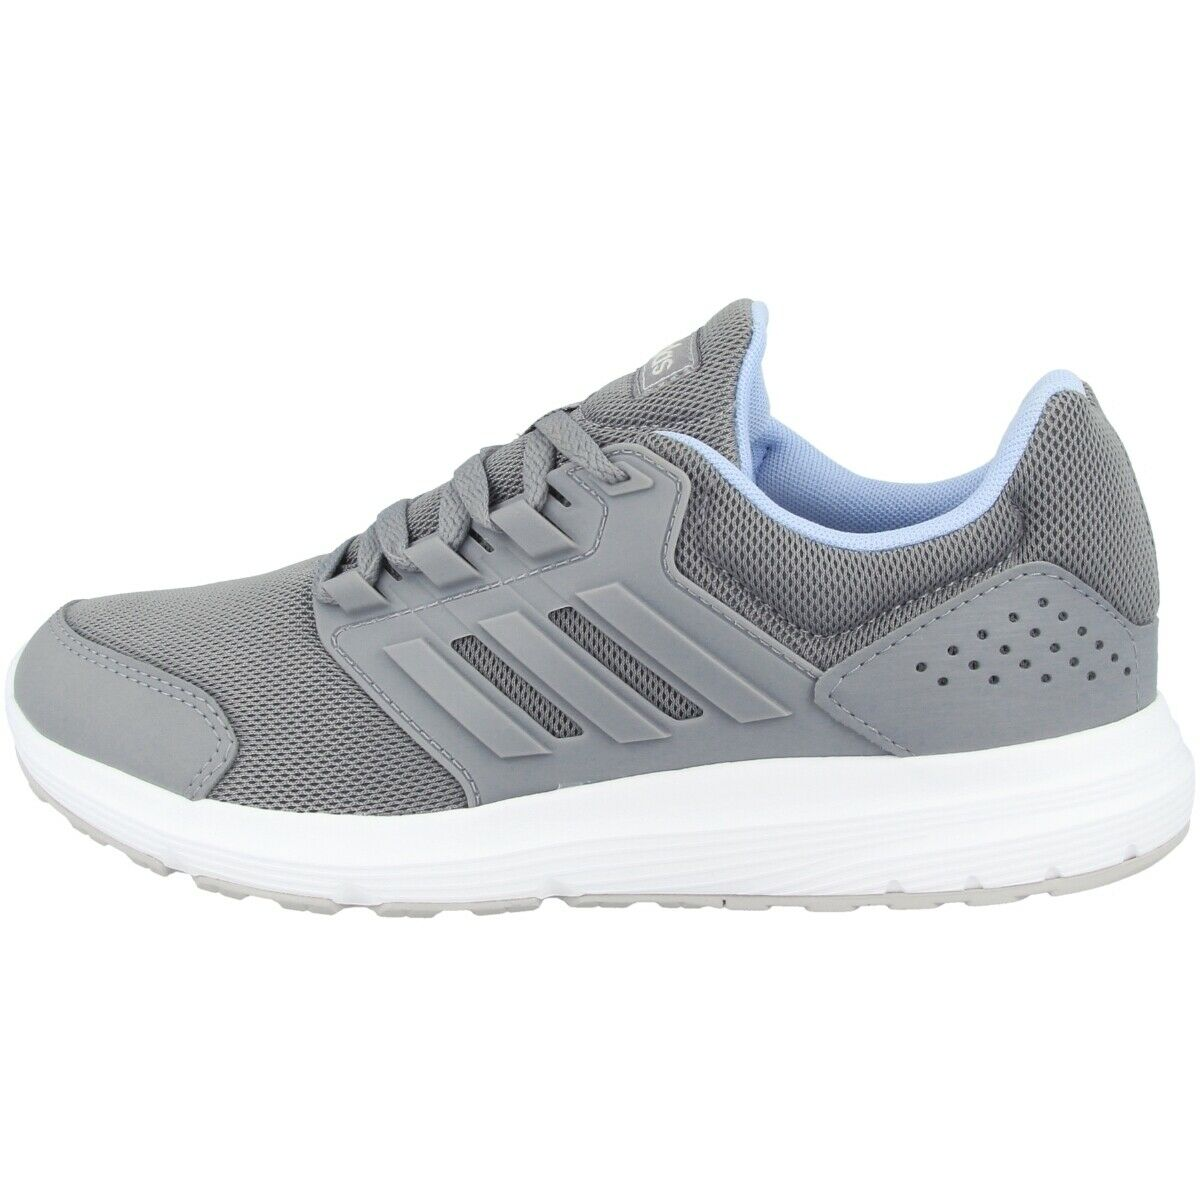 Adidas Galaxy 4 Women shoes Running shoes Womens Originals Casual  Sneaker EE8034  will make you satisfied